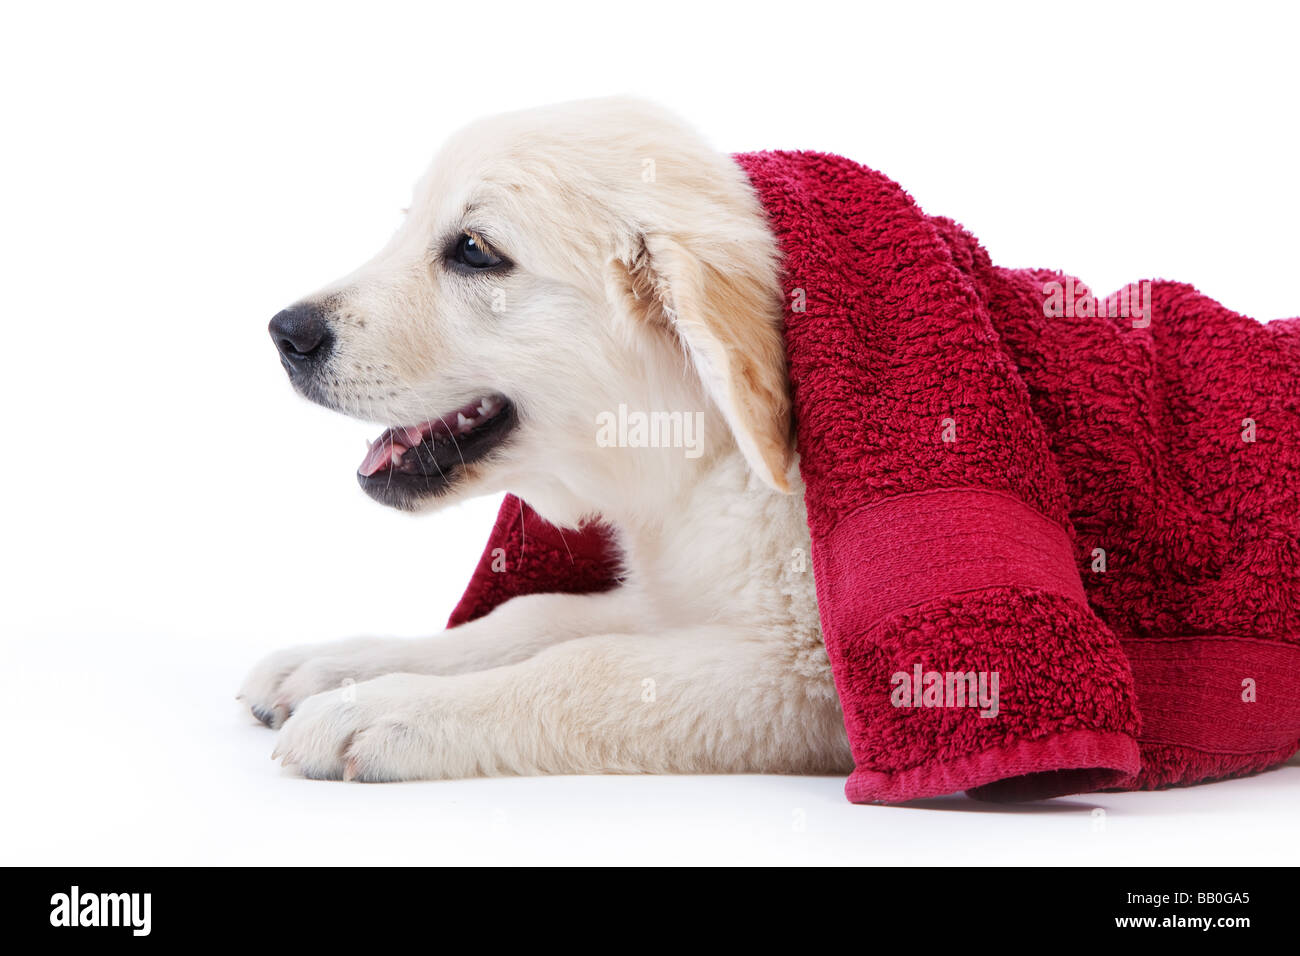 Golden retriever puppy covered by towel after bath - Stock Image